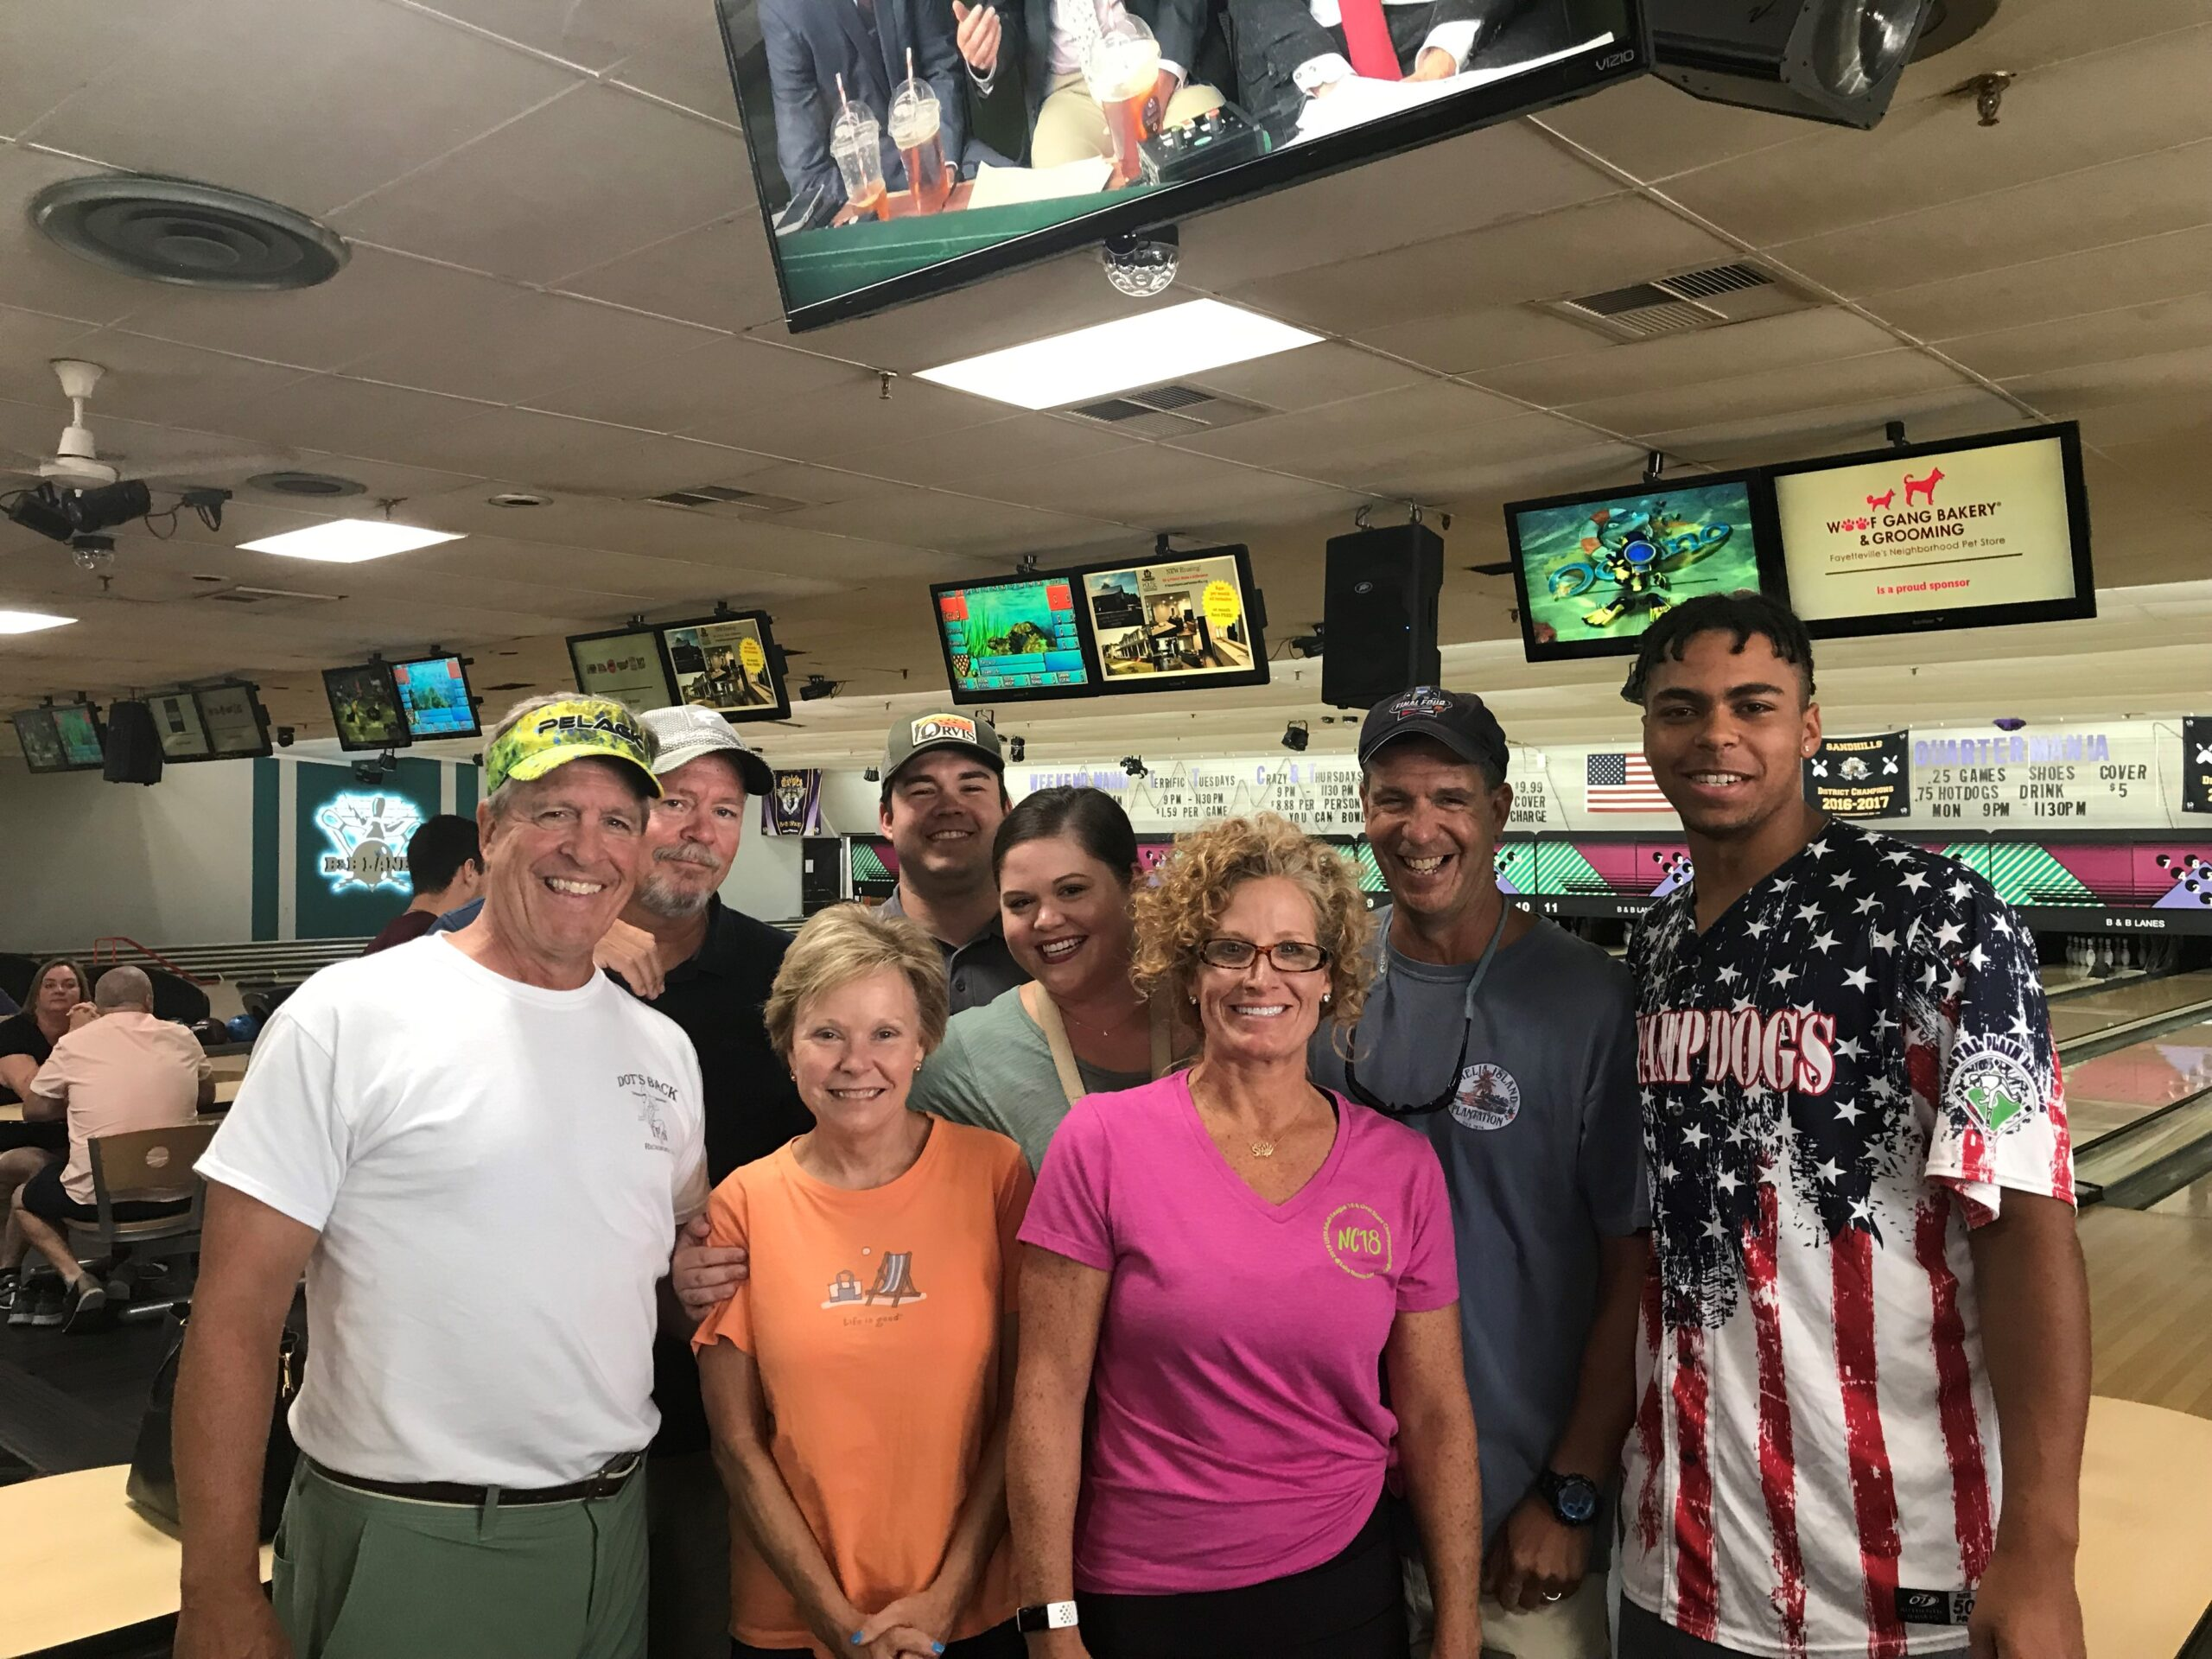 Group of people standing in front of bowling lane